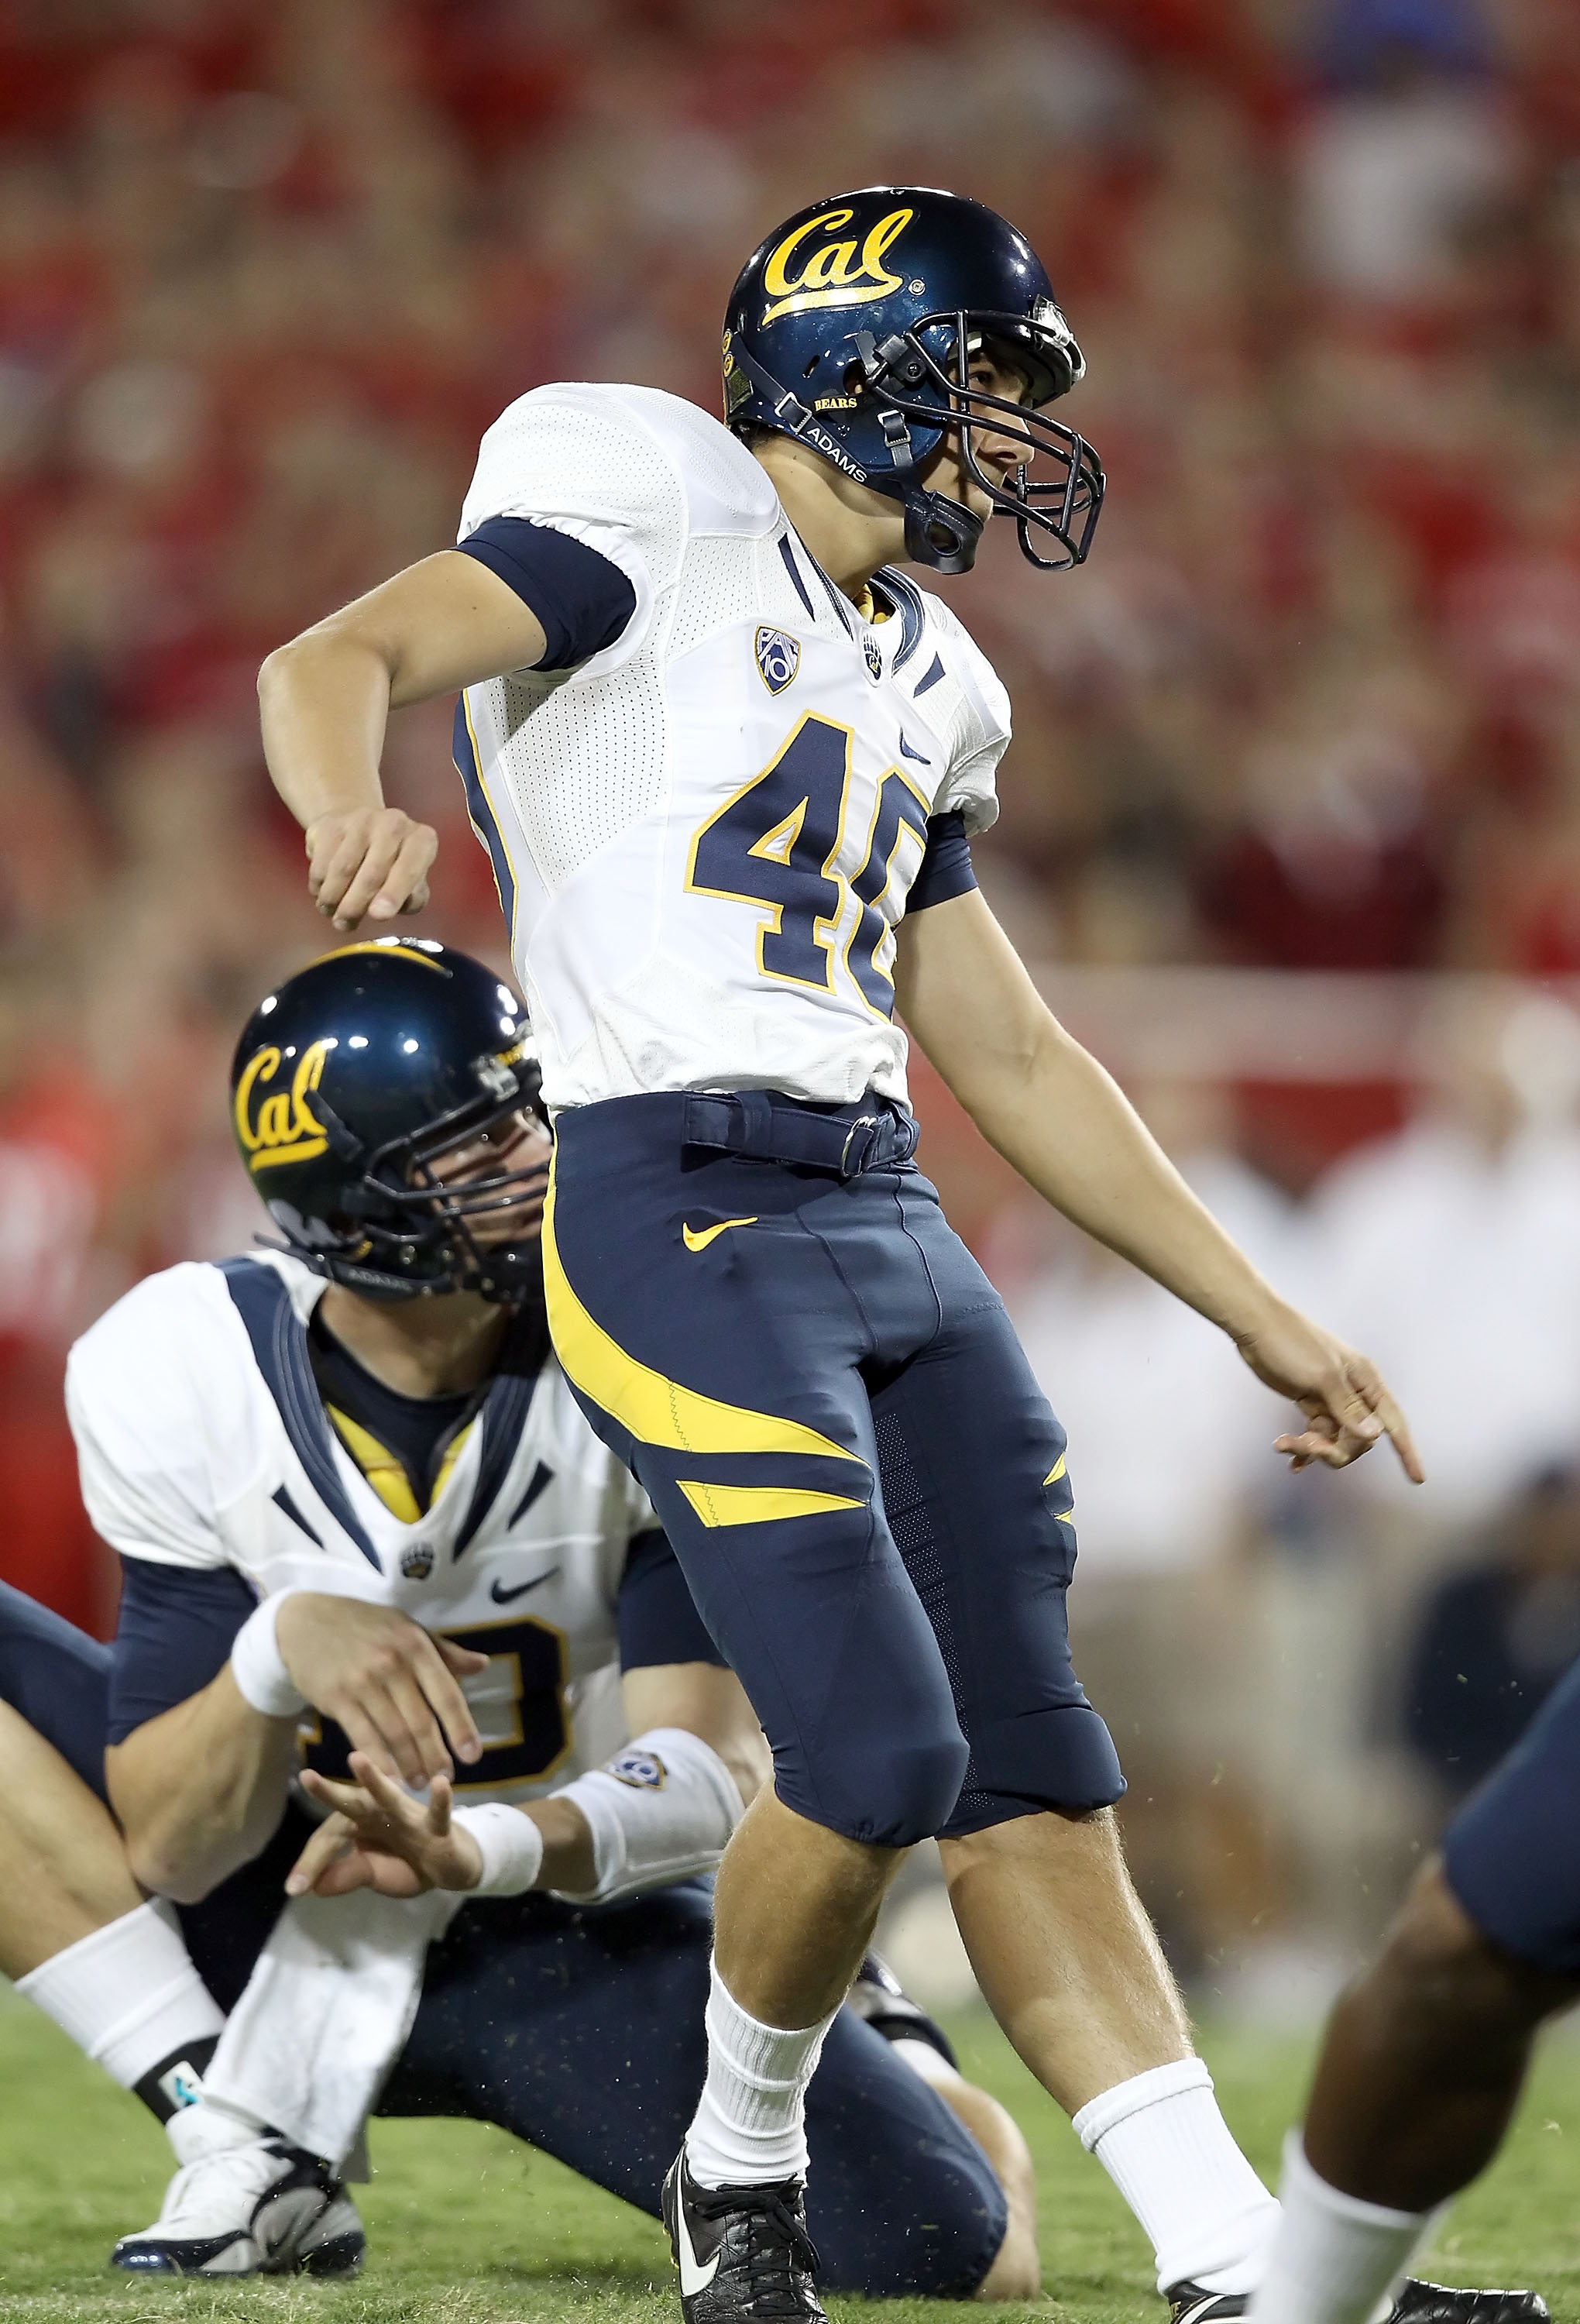 TUCSON, AZ - SEPTEMBER 25:  Kicker Giorgio Tavecchio #40 of the California Golden Bears attempts a field goal against the Arizona Wildcats during the college football game at Arizona Stadium on September 25, 2010 in Tucson, Arizona. The Wildcats defeated